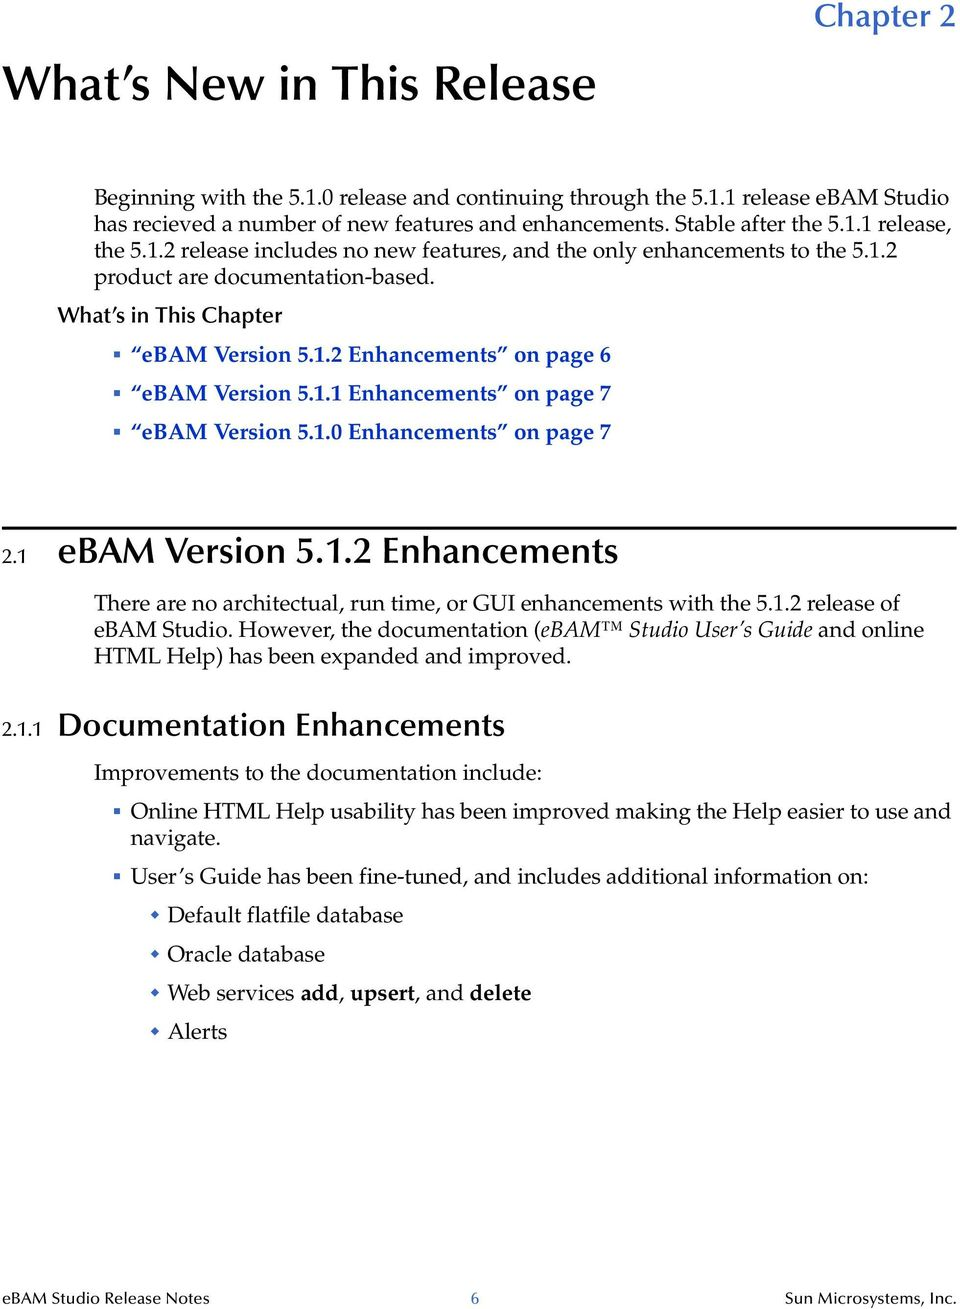 1.0 Enhancements on page 7 2.1 ebam Version 5.1.2 Enhancements There are no architectual, run time, or GUI enhancements with the 5.1.2 release of ebam Studio.